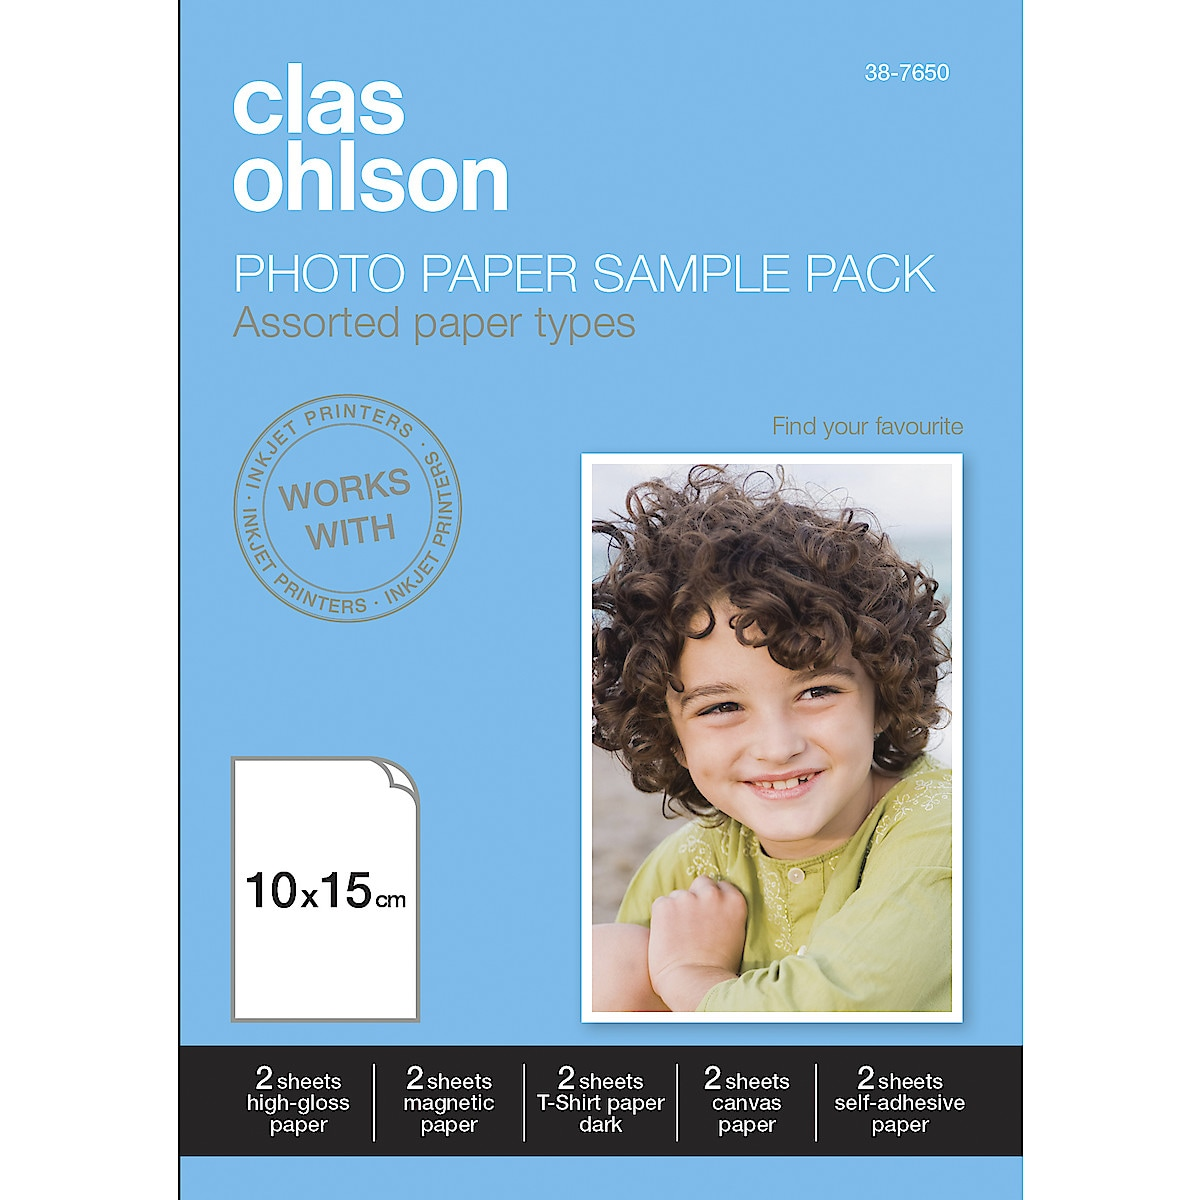 Fotopapperspaket Clas Ohlson